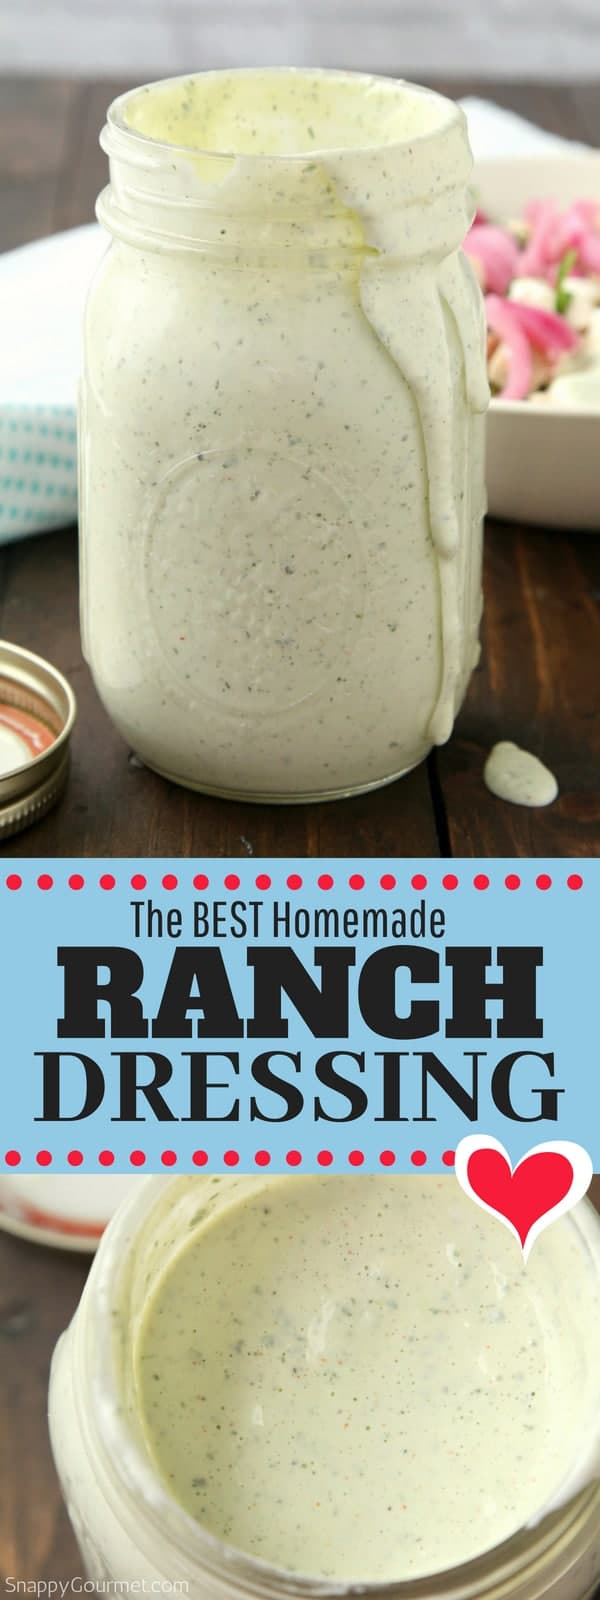 Homemade Ranch Dressing, how to make ranch dressing from scratch with easy ingredients like buttermilk and fresh herbs and spices. You can easily change it up to make it dairy free and other variations. #Ranch #Dressing #Salad #SnappyGourmet #Recipe #Buttermilk #DairyFree